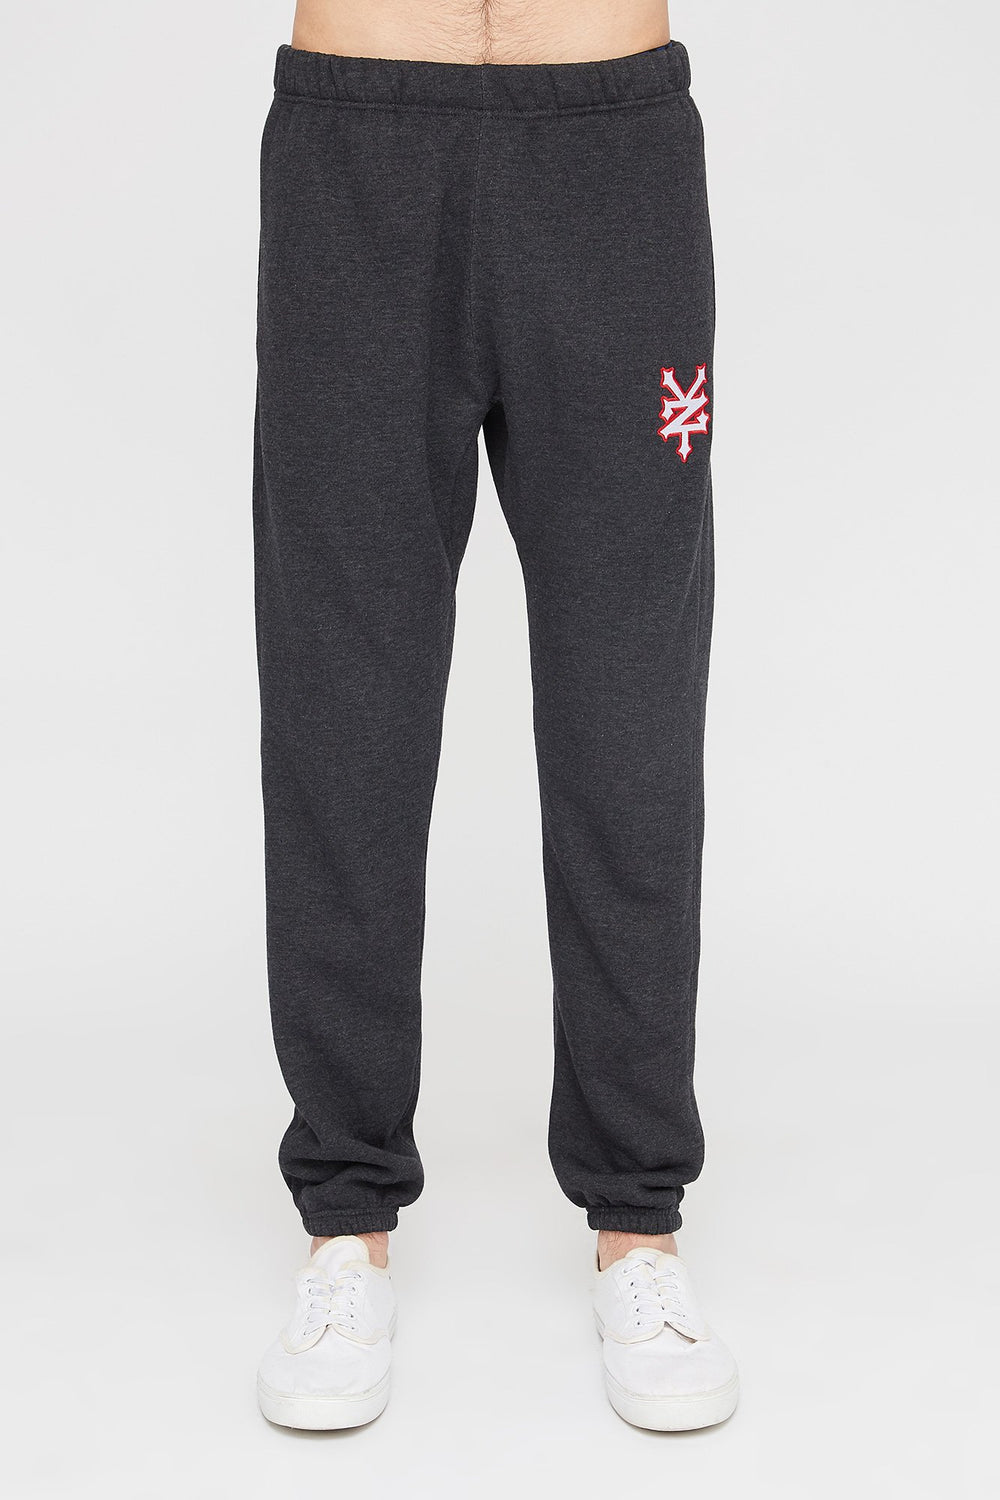 Zoo York Mens Embroidered Logo Joggers Charcoal